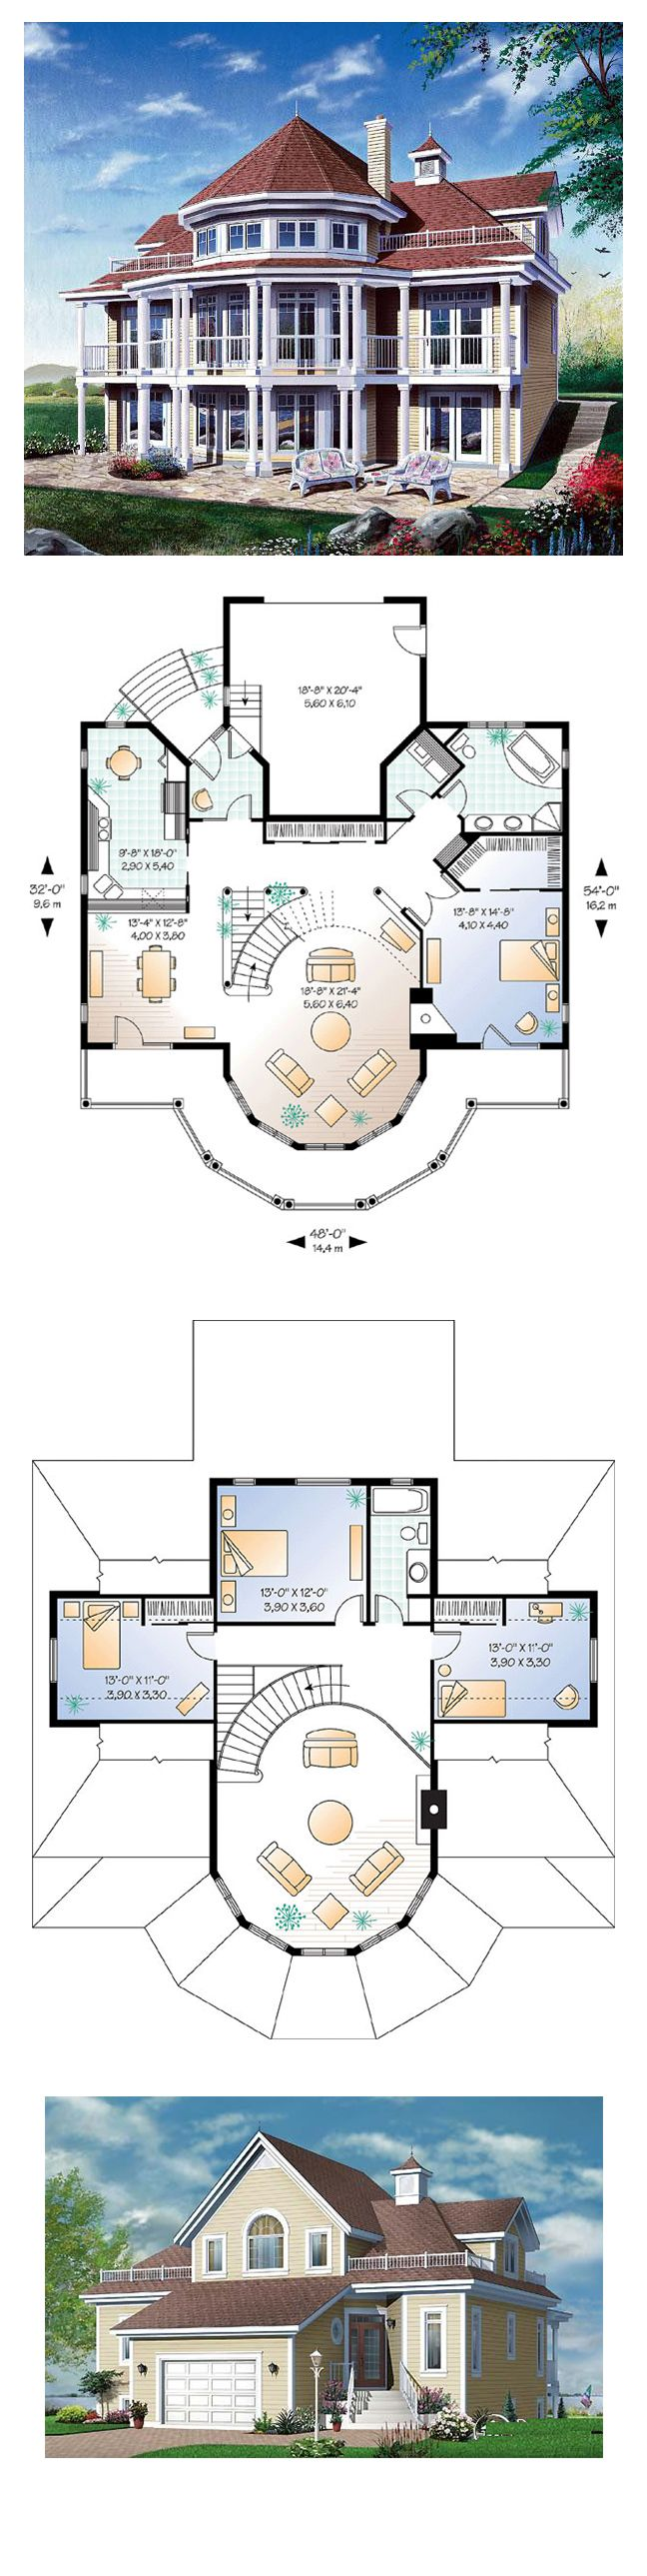 coastal house plan 64807 total living area 2348 sq ft 4